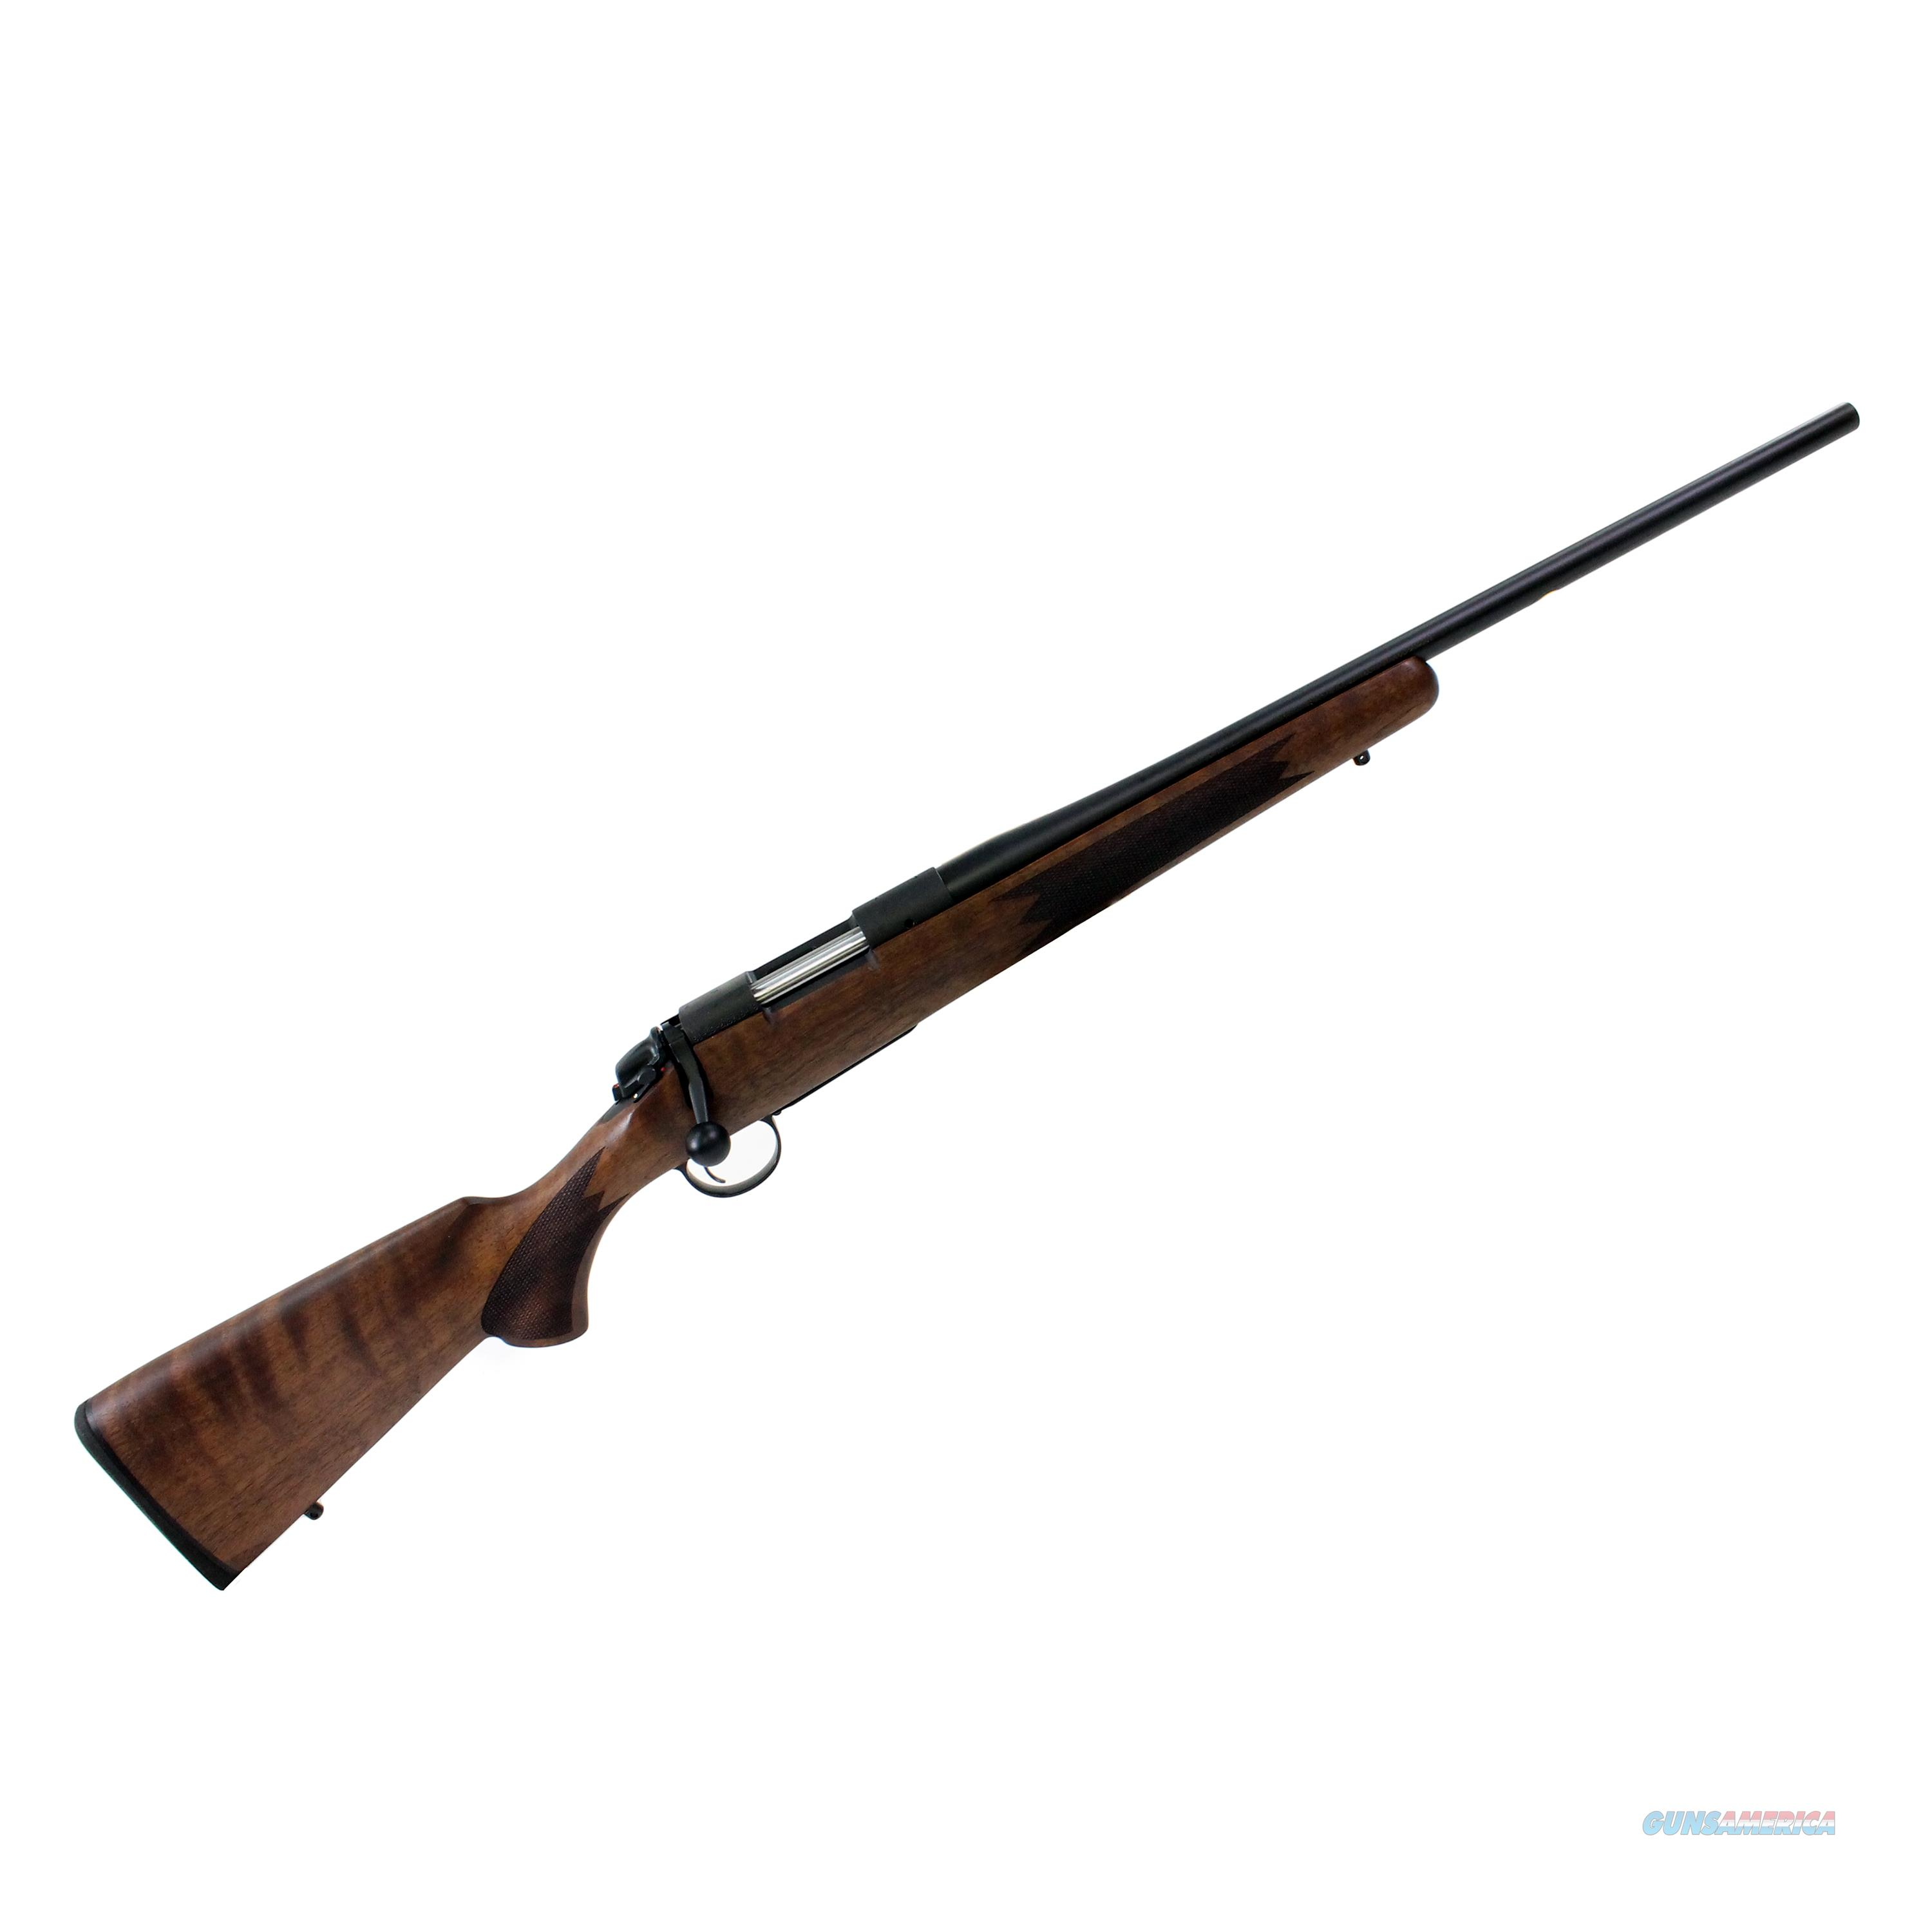 "Bergara Rifles B14 Woodsman Rifle 6.5Mm Creedmoor, 22"" Barrel, 4 Rounds, Walnut Stock B14S202  Guns > Rifles > B Misc Rifles"